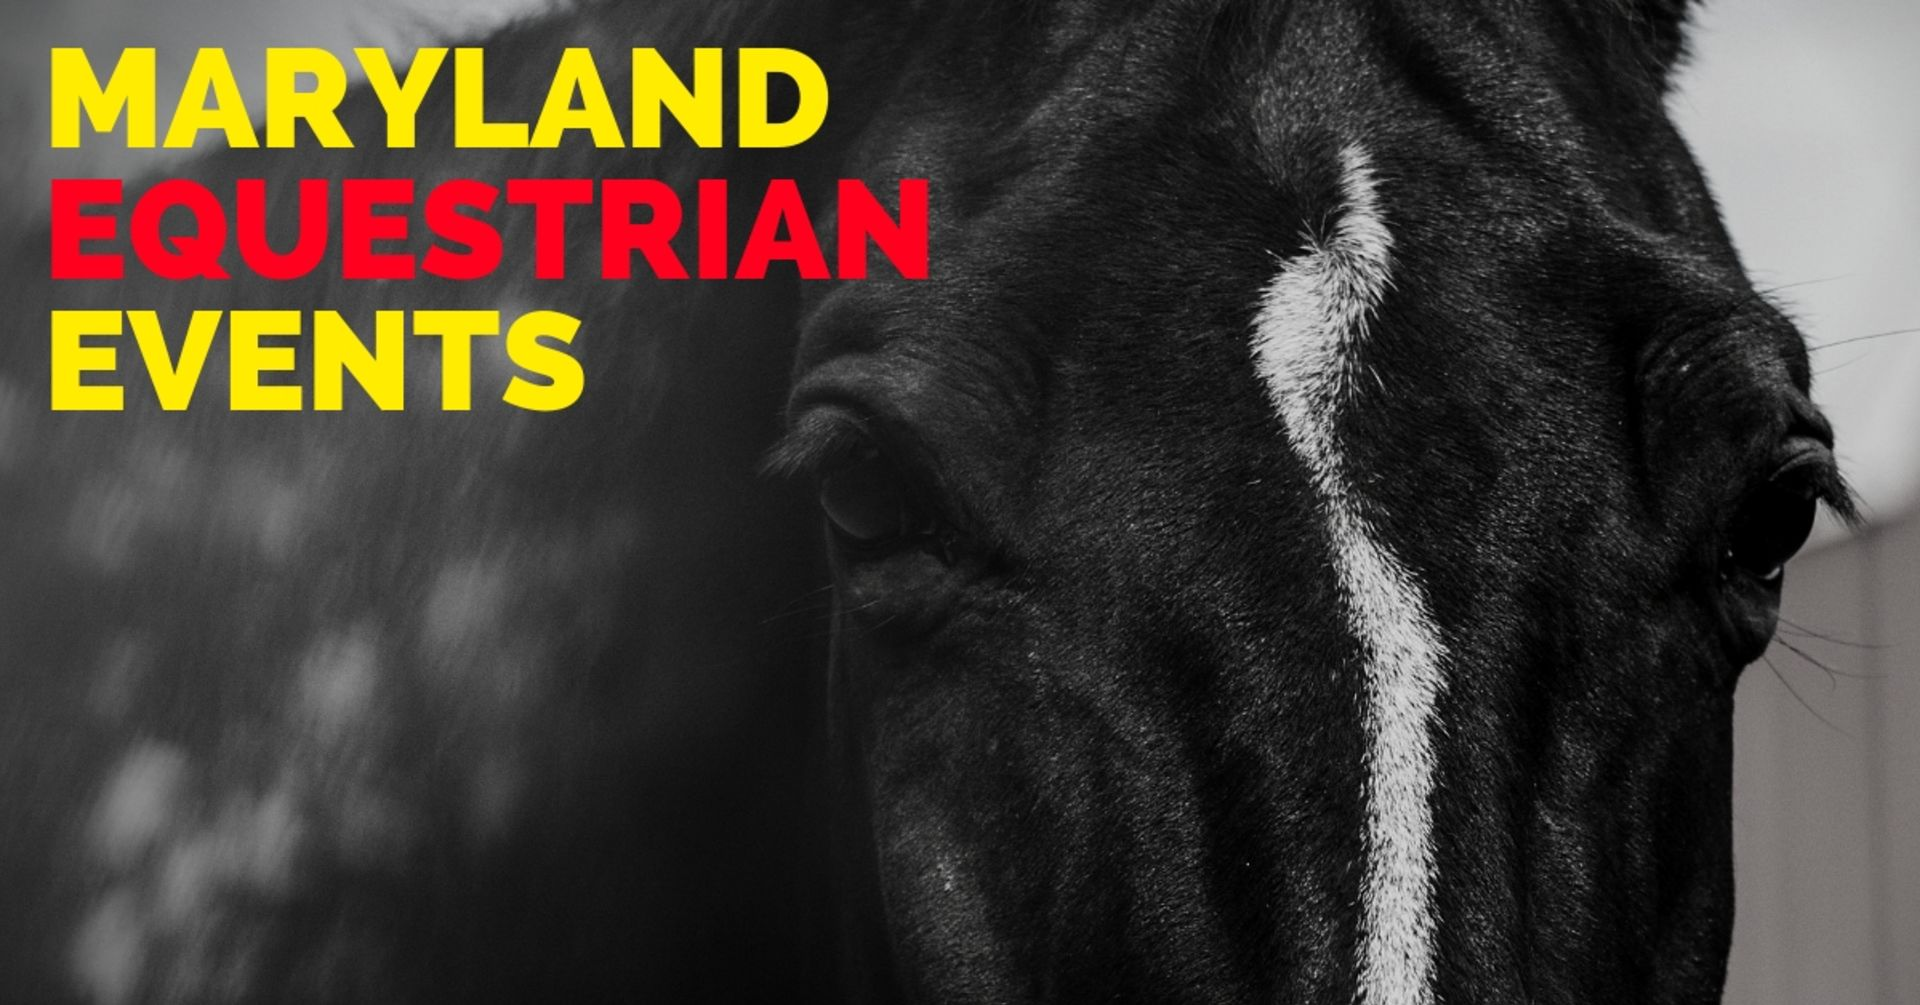 Maryland Equestrian Events